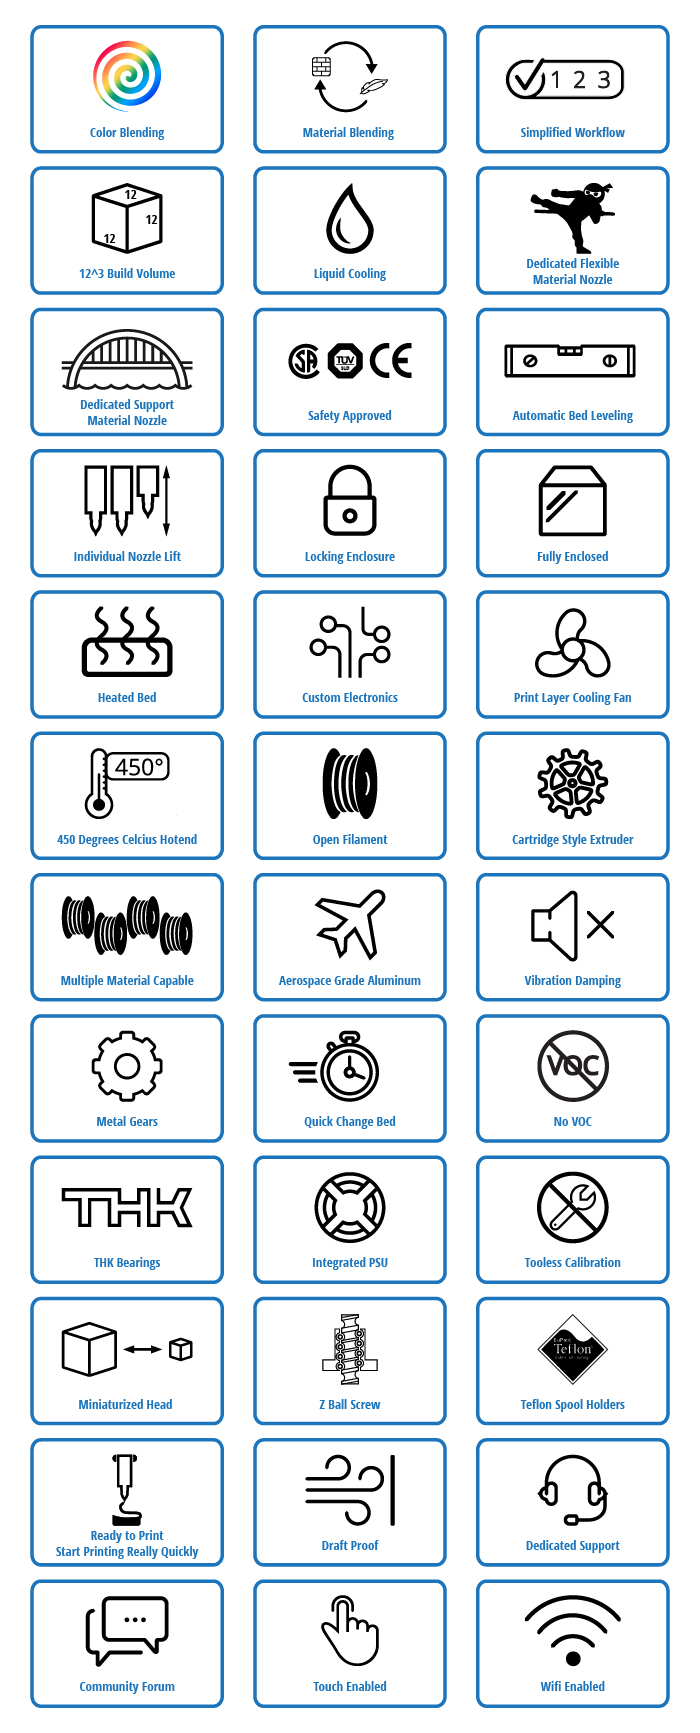 odr-icons-web-all-35-icons.jpg